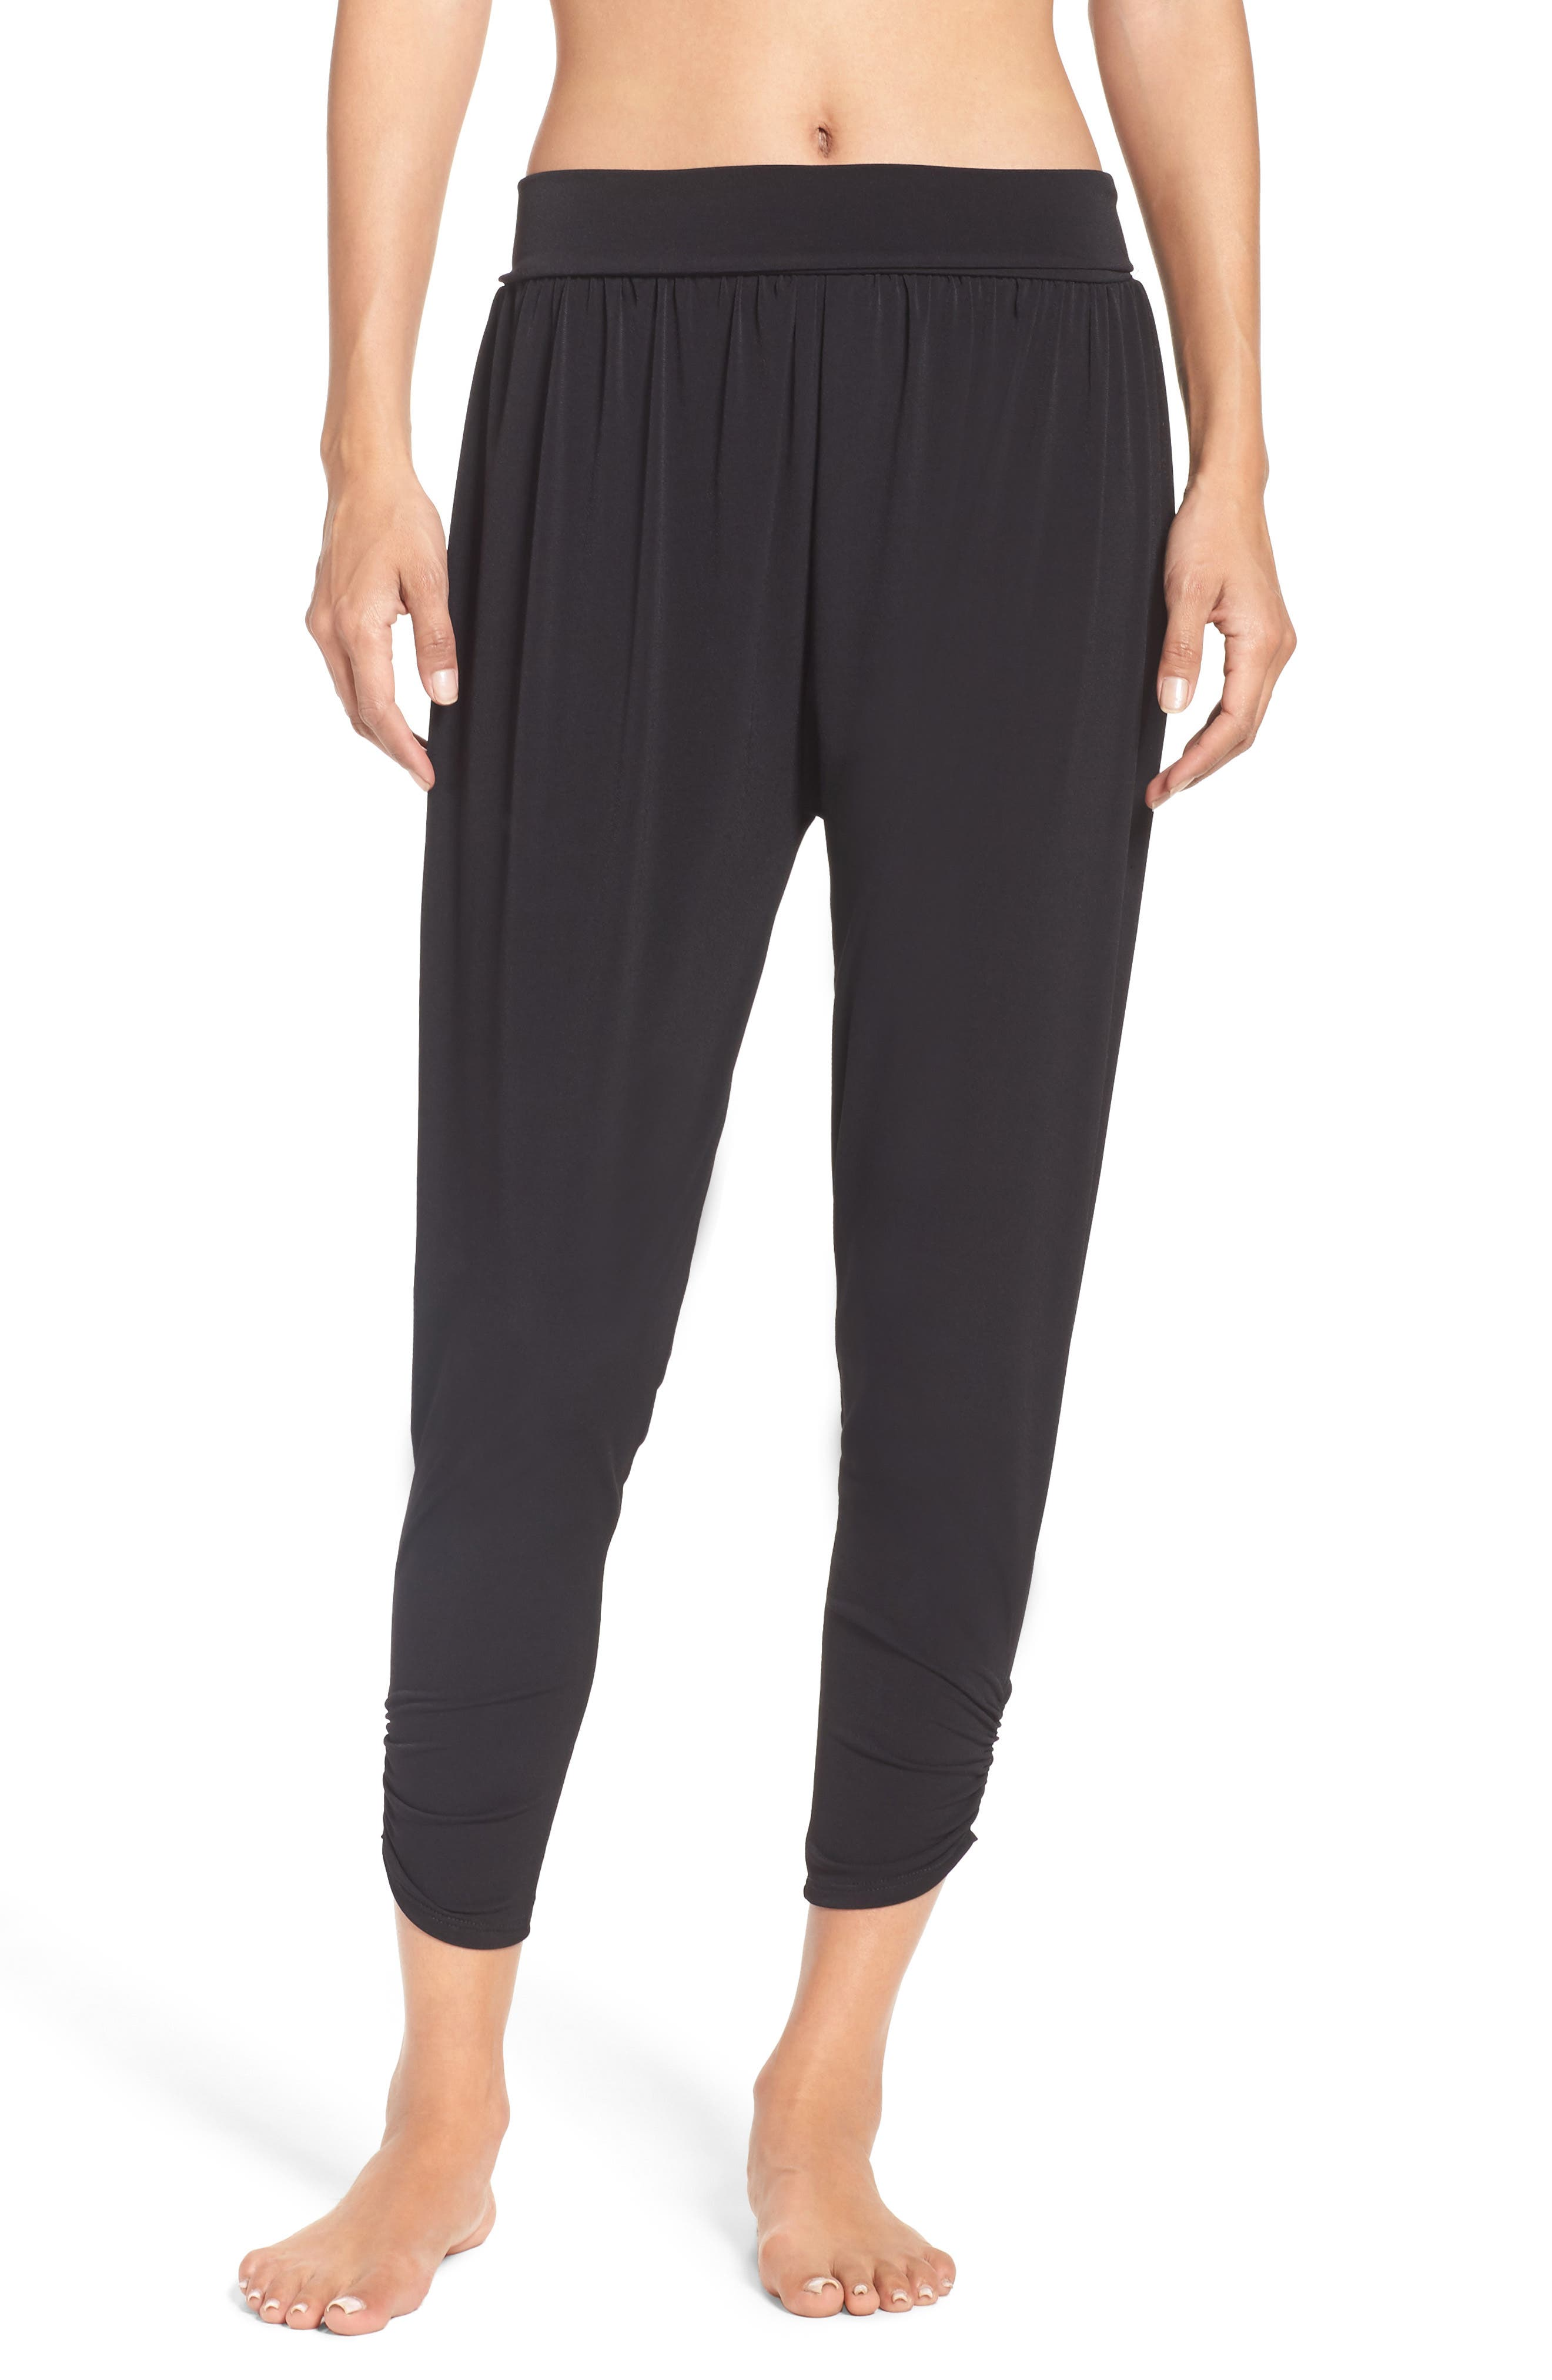 Shop for womens harem pants online at Target. Free shipping on purchases over $35 and save 5% every day with your Target REDcard.